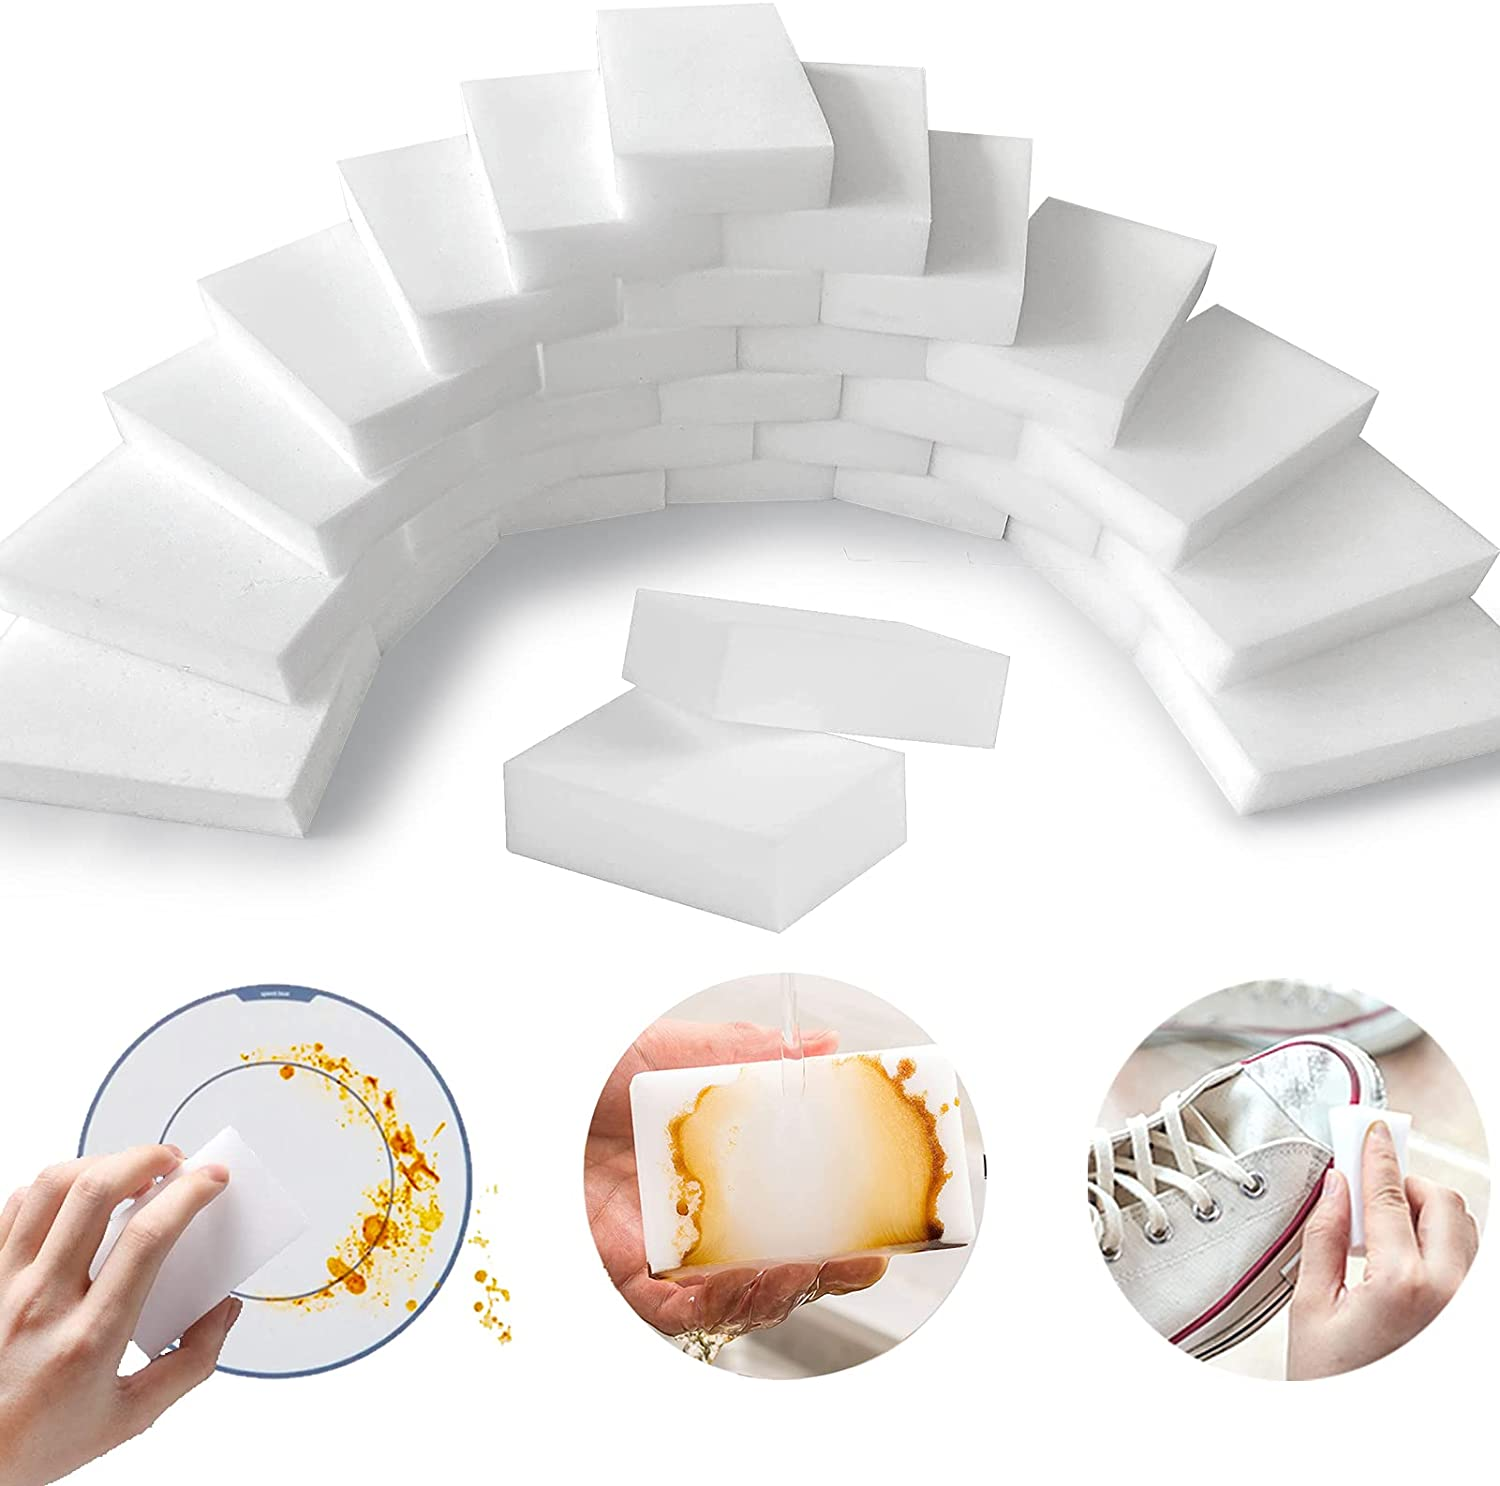 YeahWhee 50-Pack Magic Cleaning Sponge Eraser Sheets  $8.09 Coupon